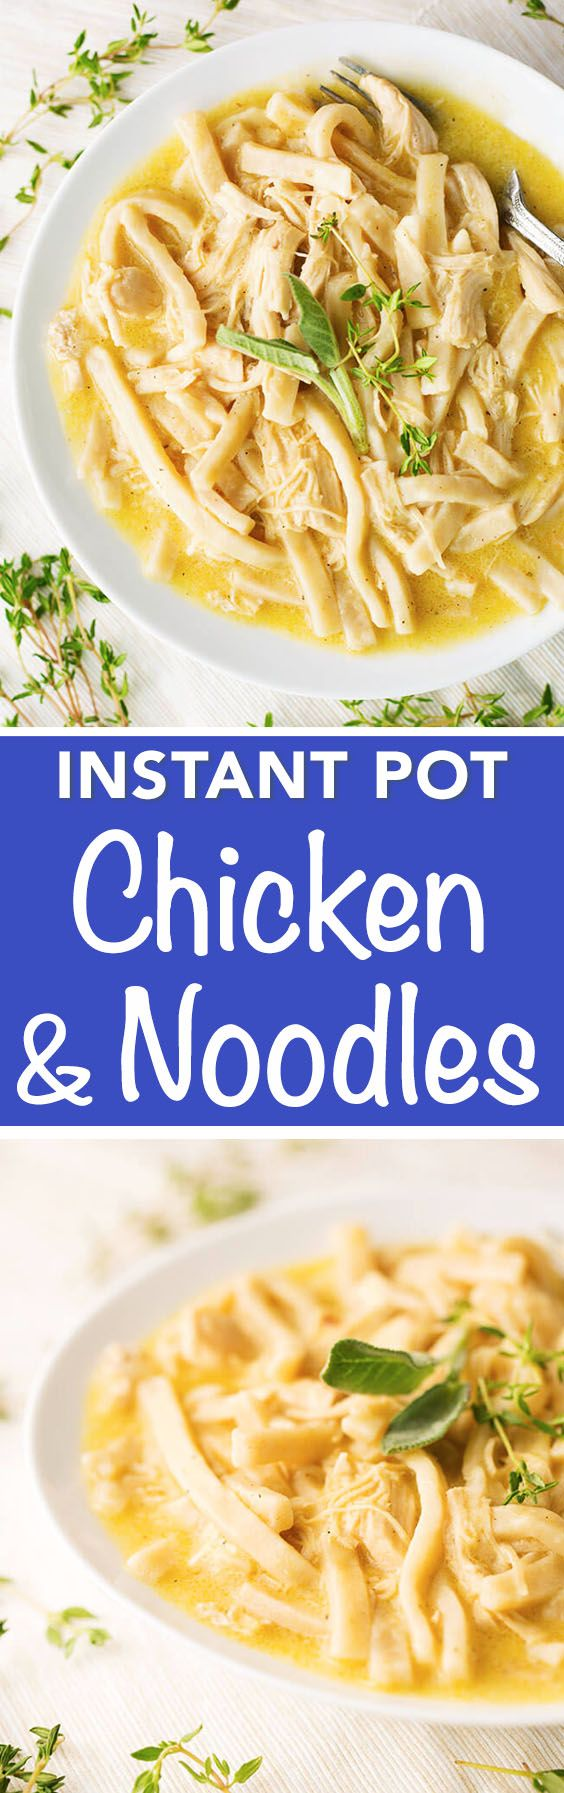 Instant Pot Chicken Noodles Is A Comforting Meal The Whole -5278